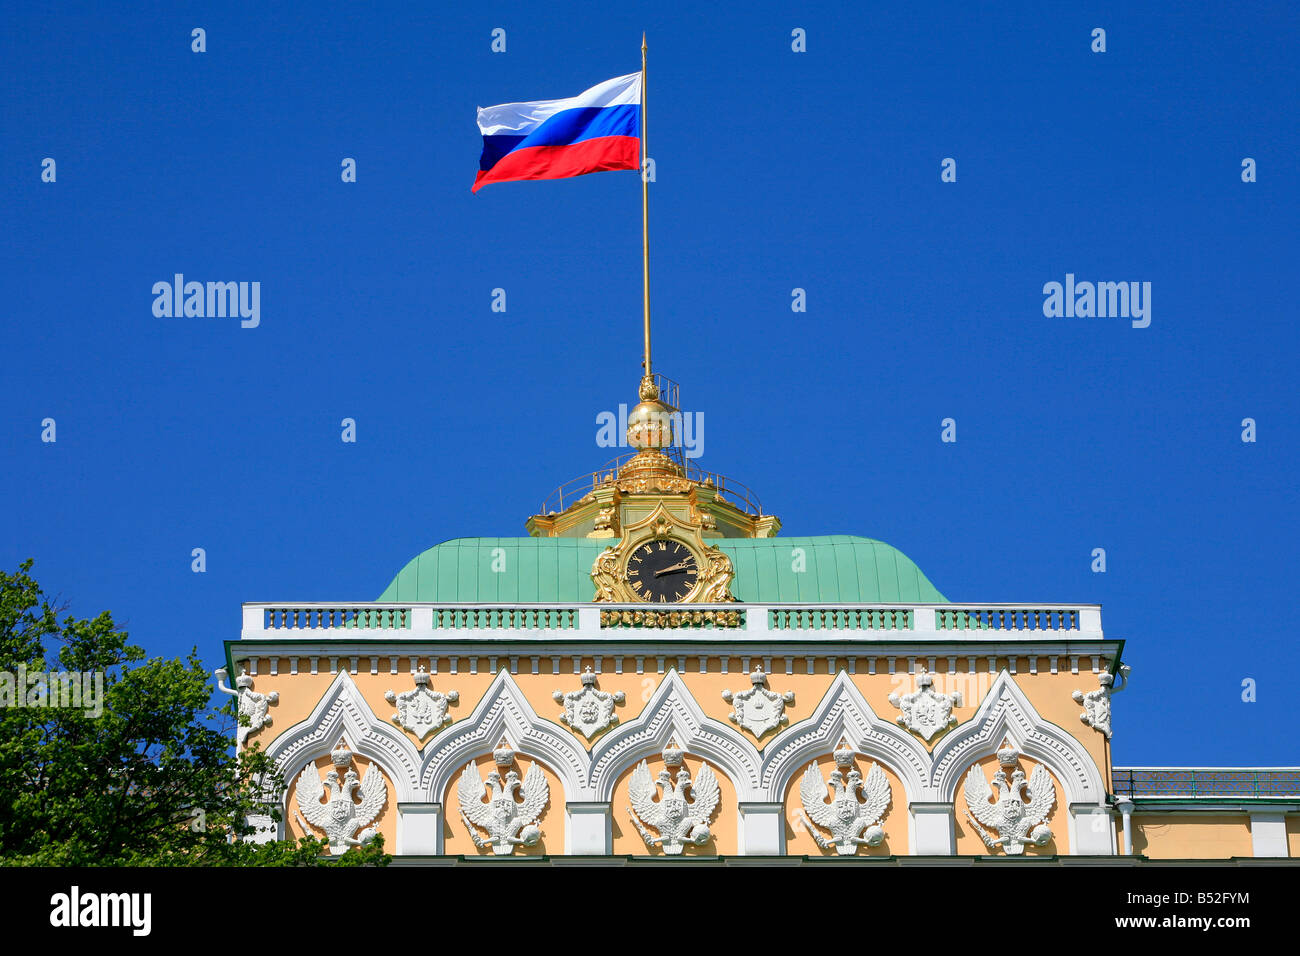 the russian flag flying over the grand kremlin palace in moscow